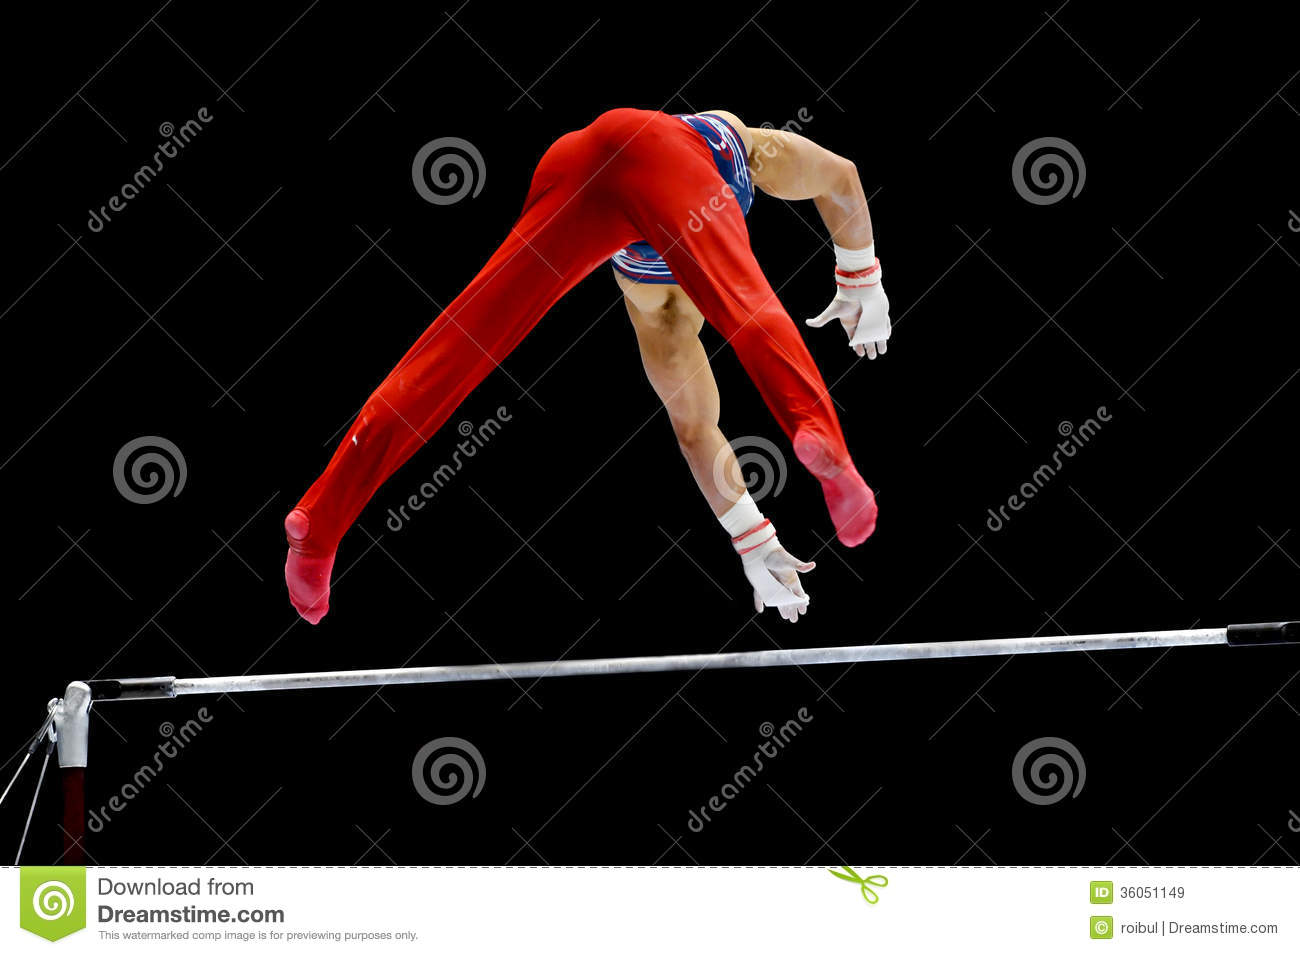 Gymnast on uneven bars stock image  Image of competitions